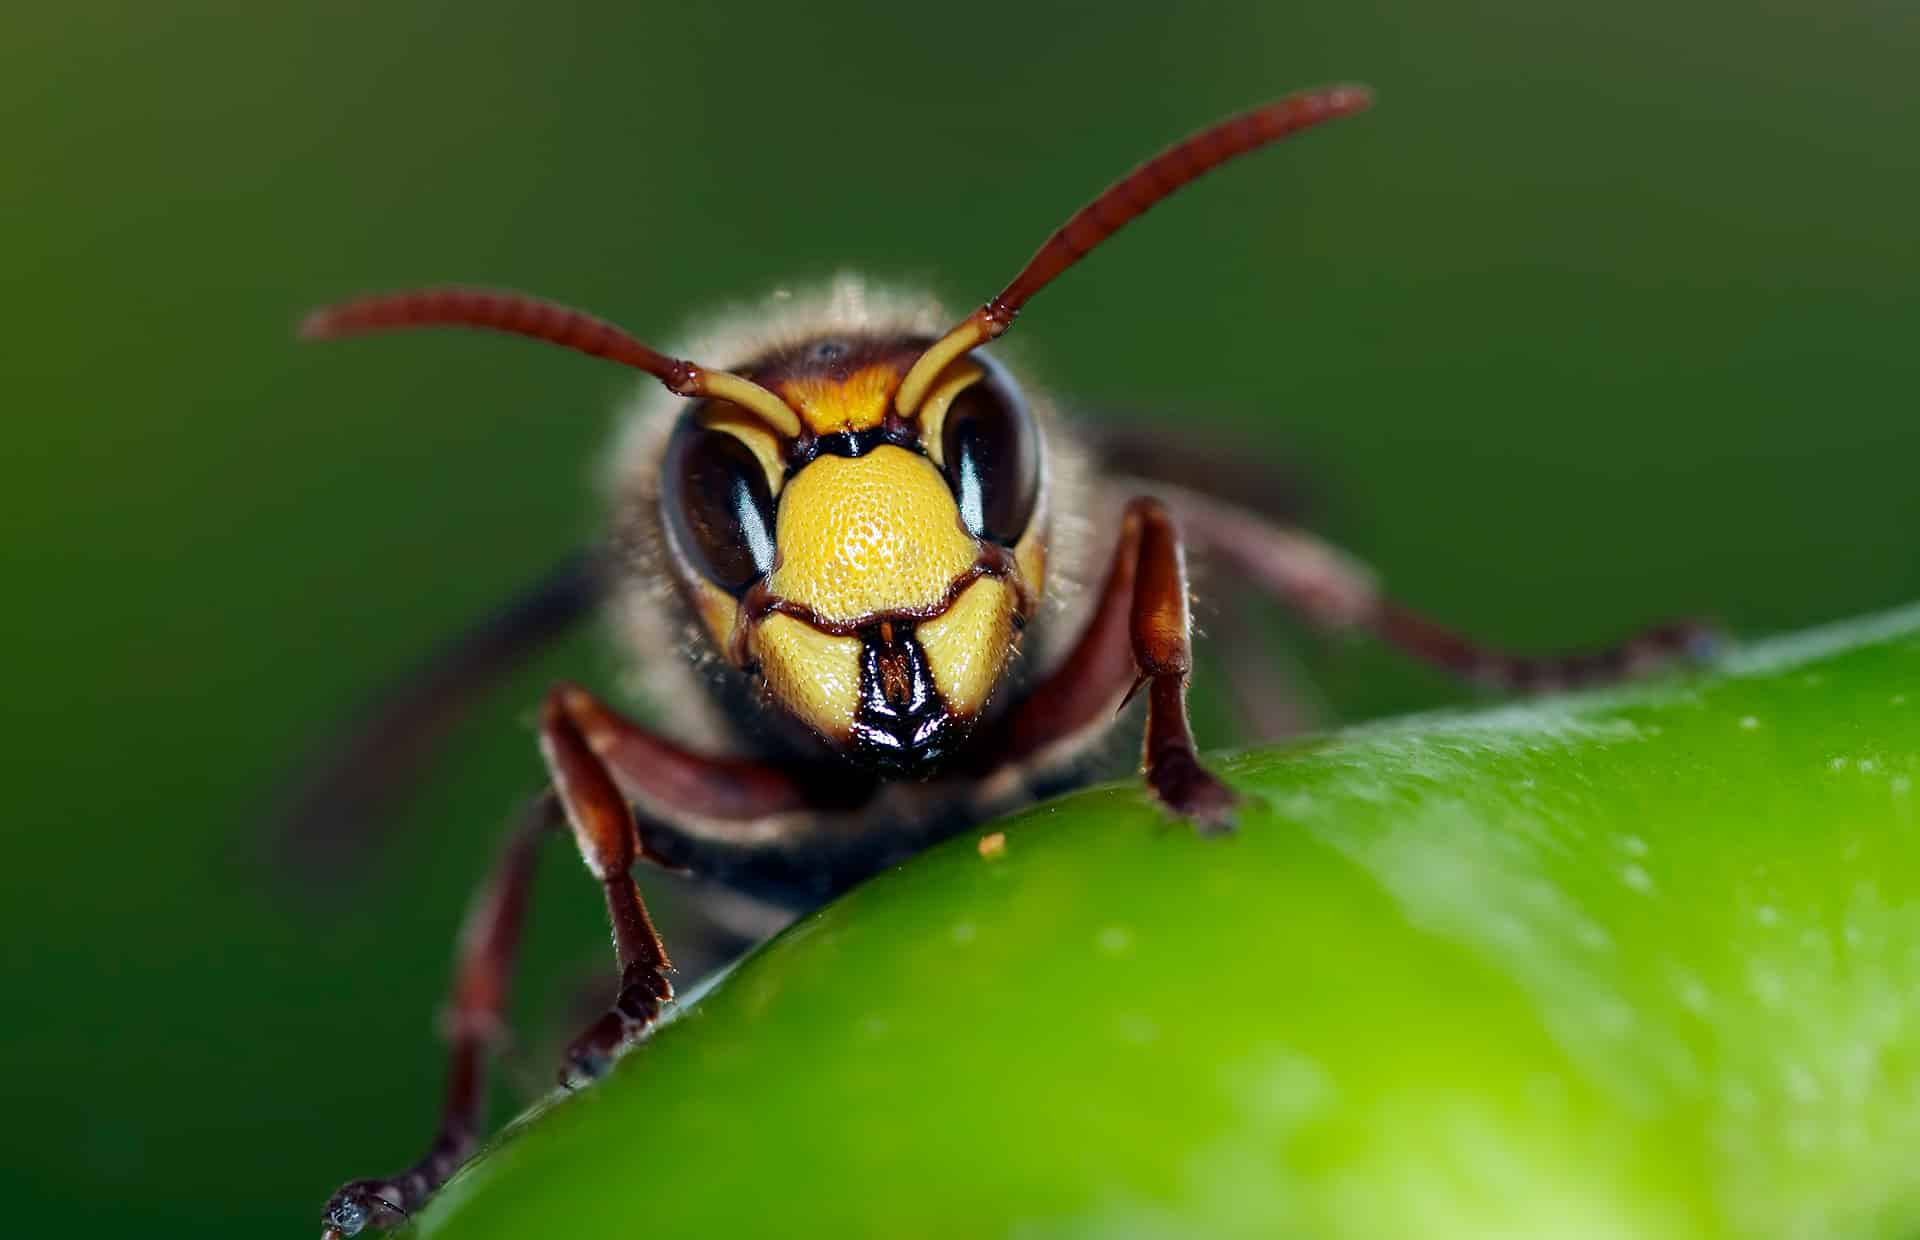 Hornet staring down camera, sitting on leaf.